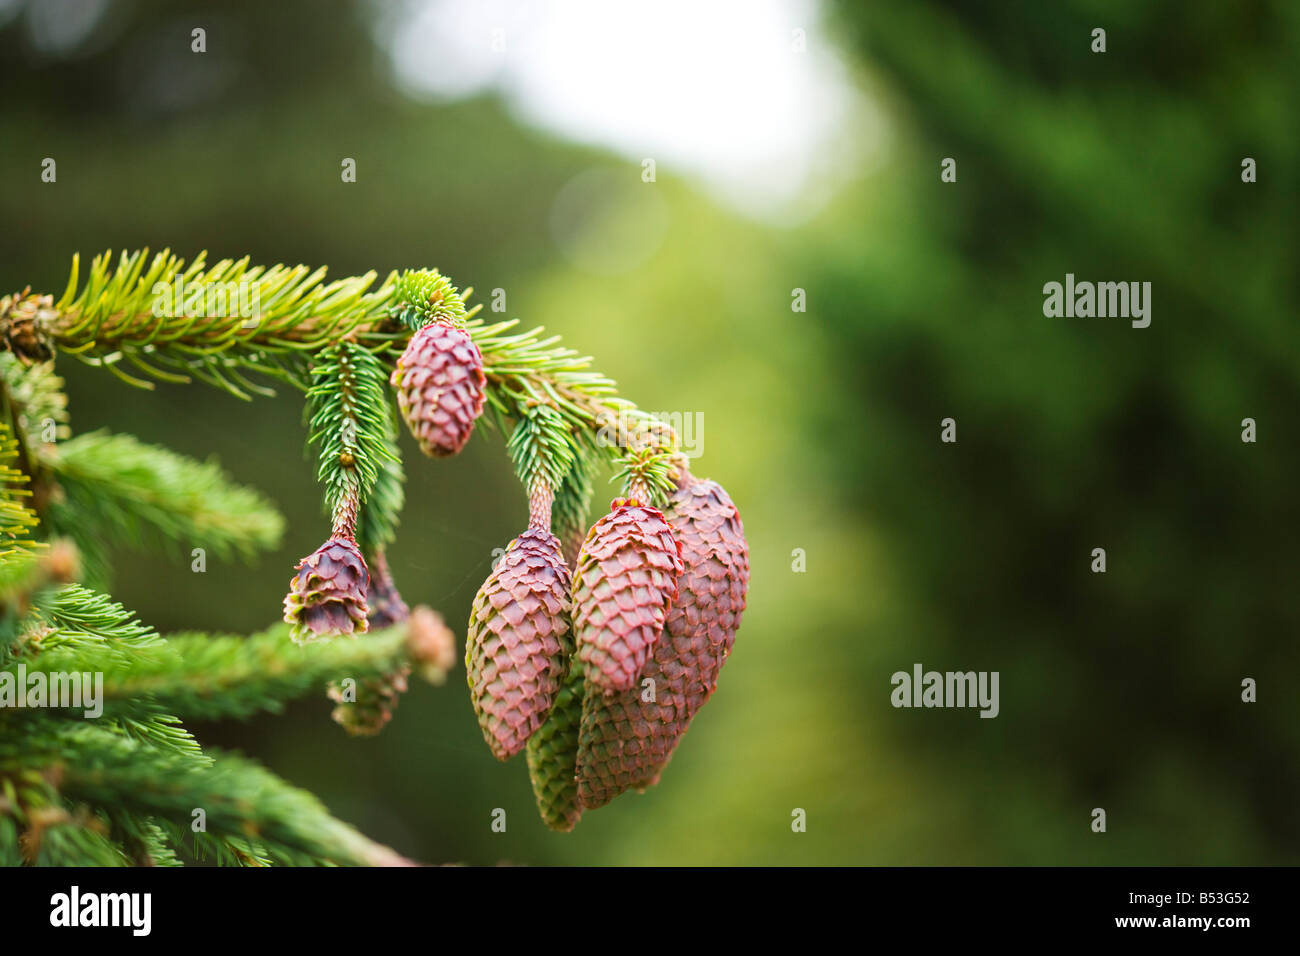 Picea abies Acracona - Stock Image